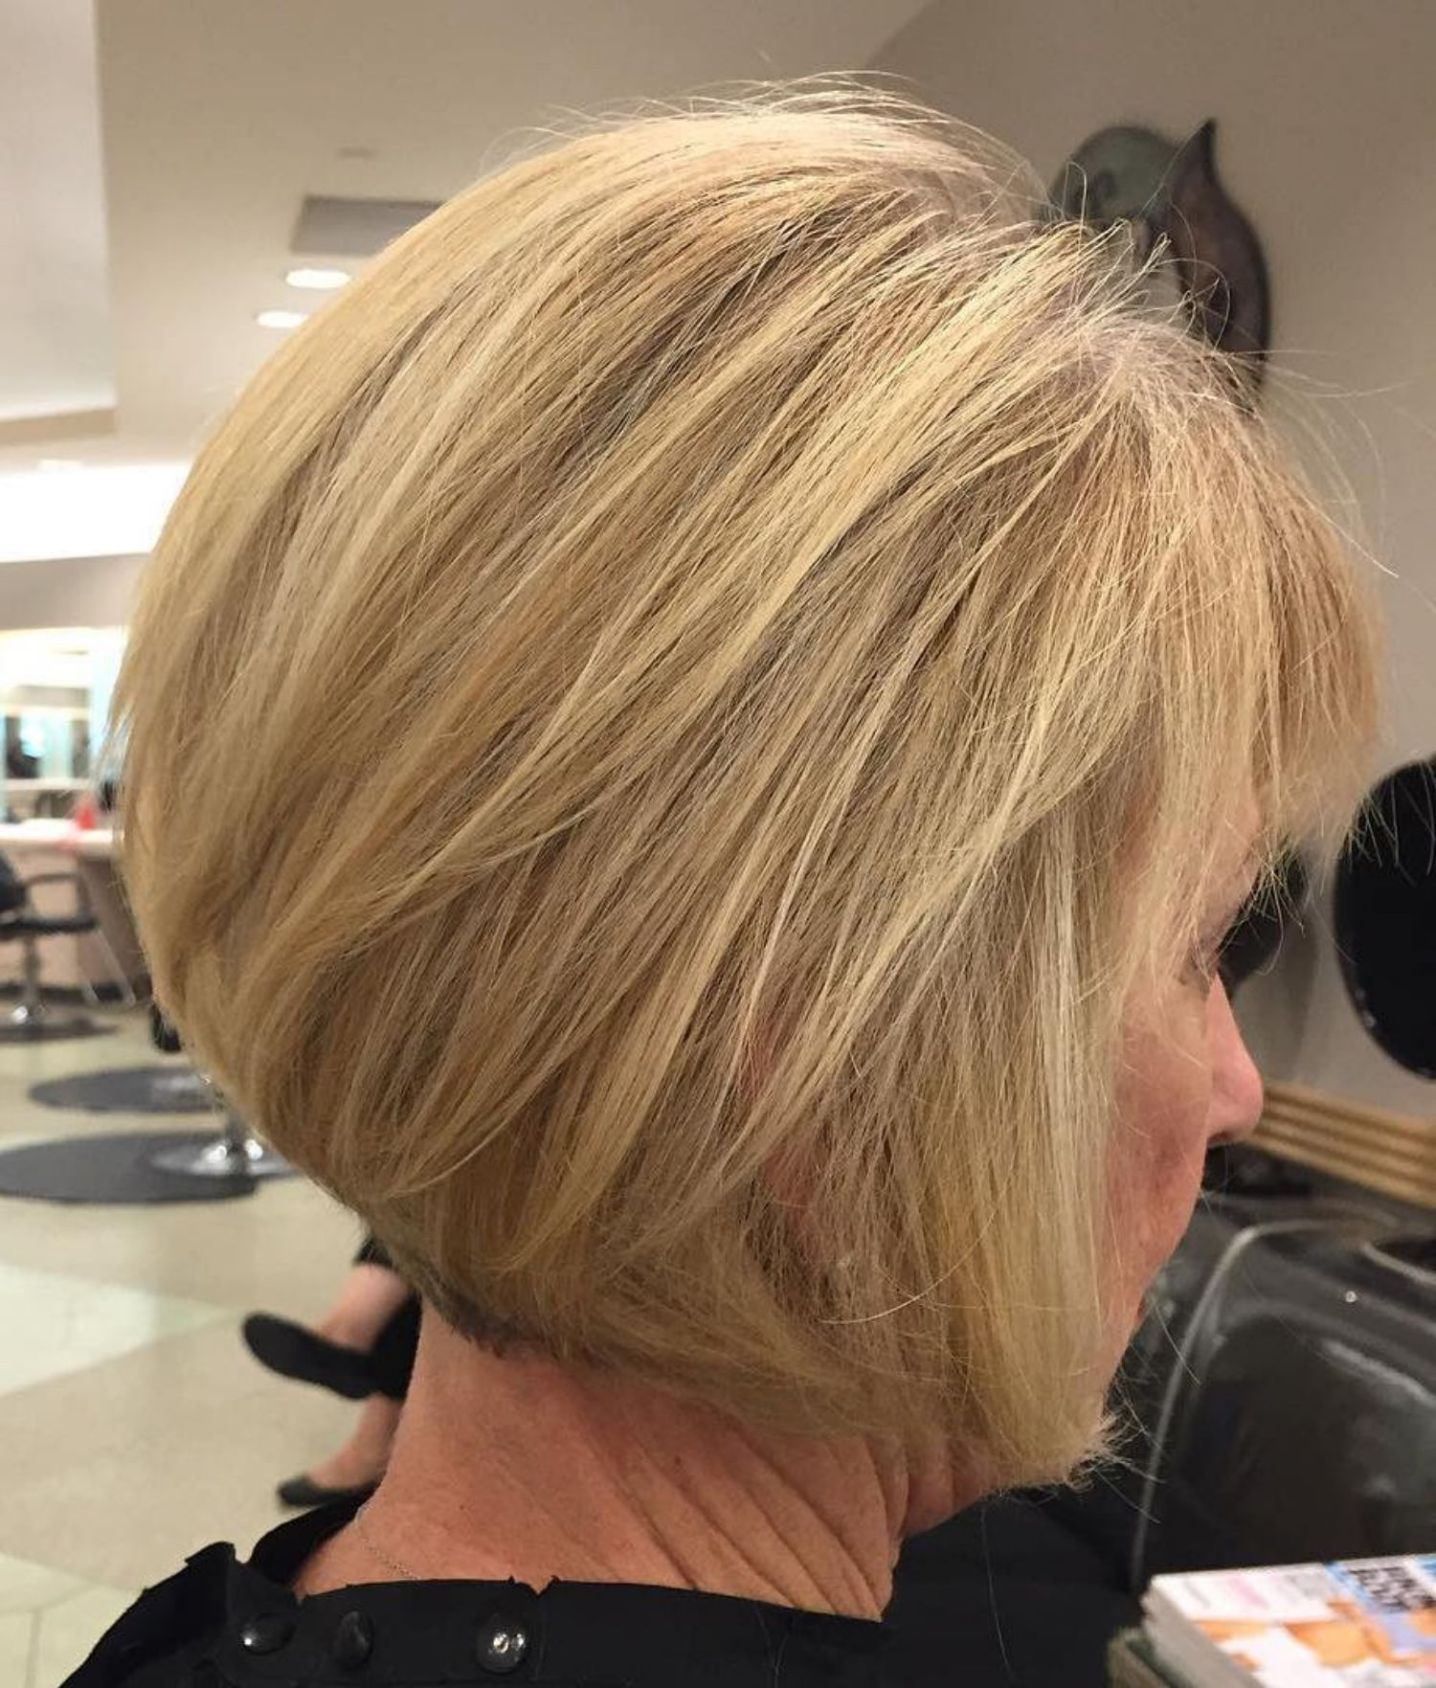 50 Cute Short Hairstyles for Women Over 60 (Updated 2021) 092c1aabc153a20784b2bb4cc5f0bab4